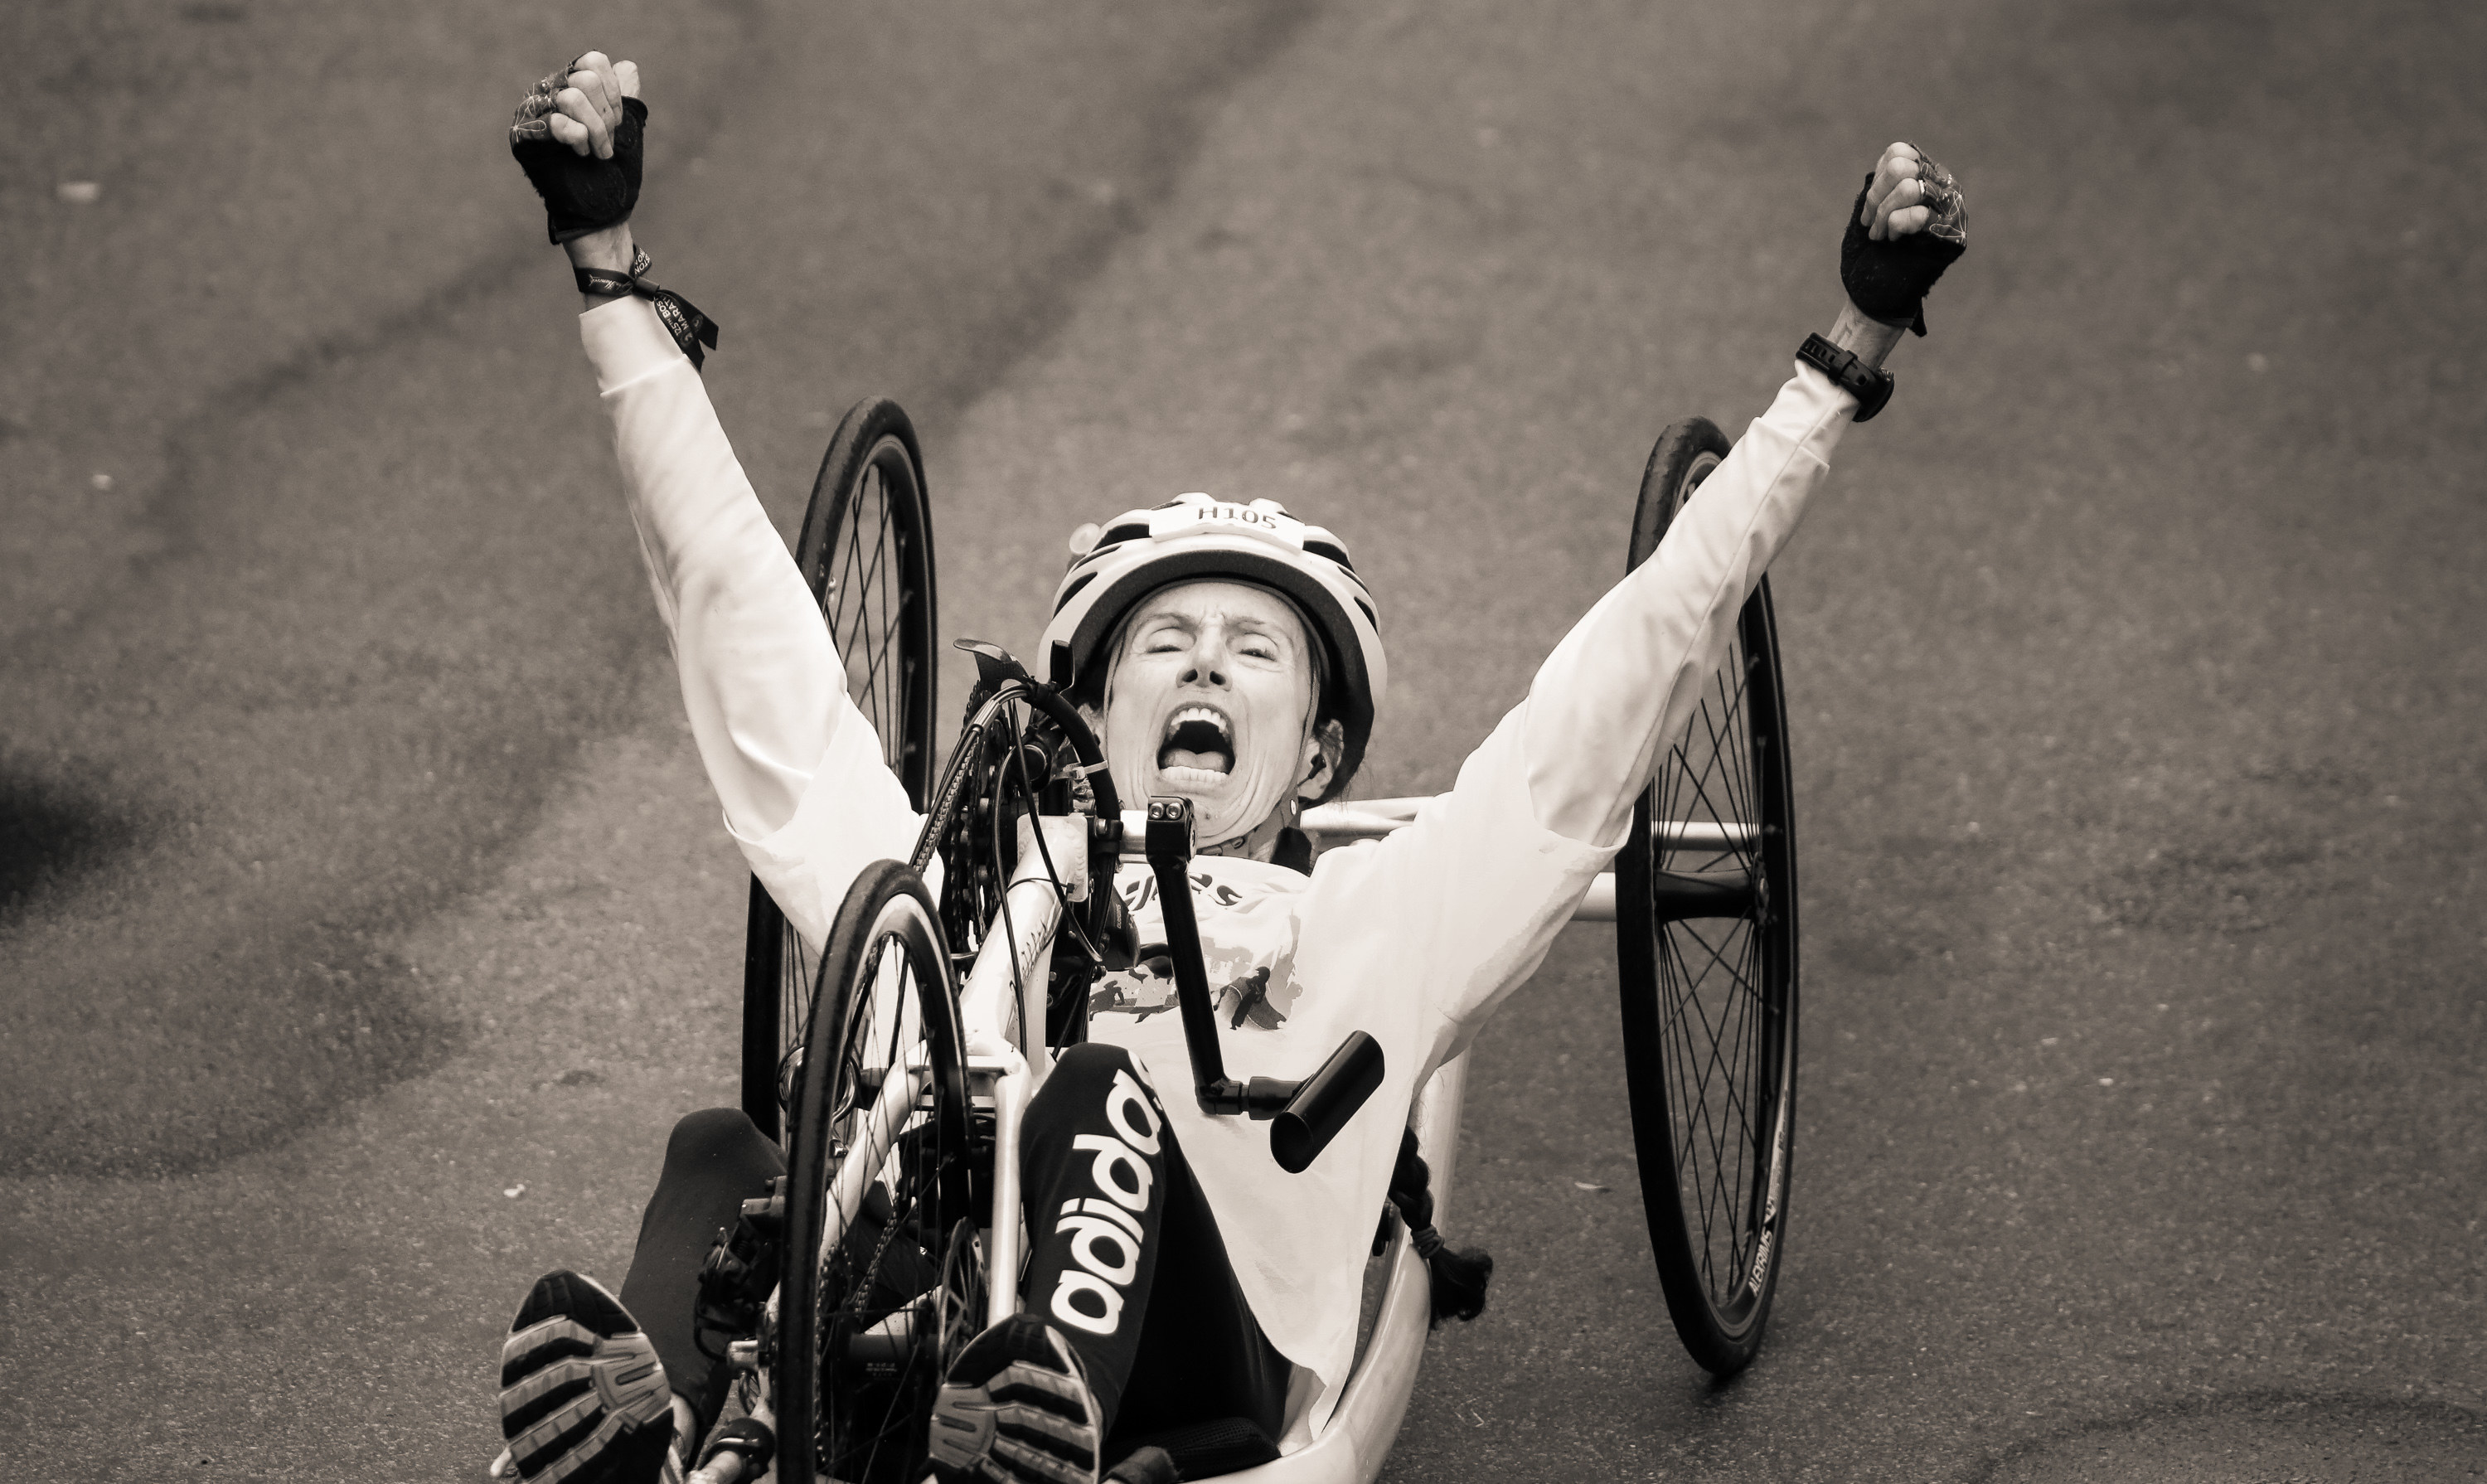 A competitor in a recumbent bicycle celebrates as he crosses the finish line